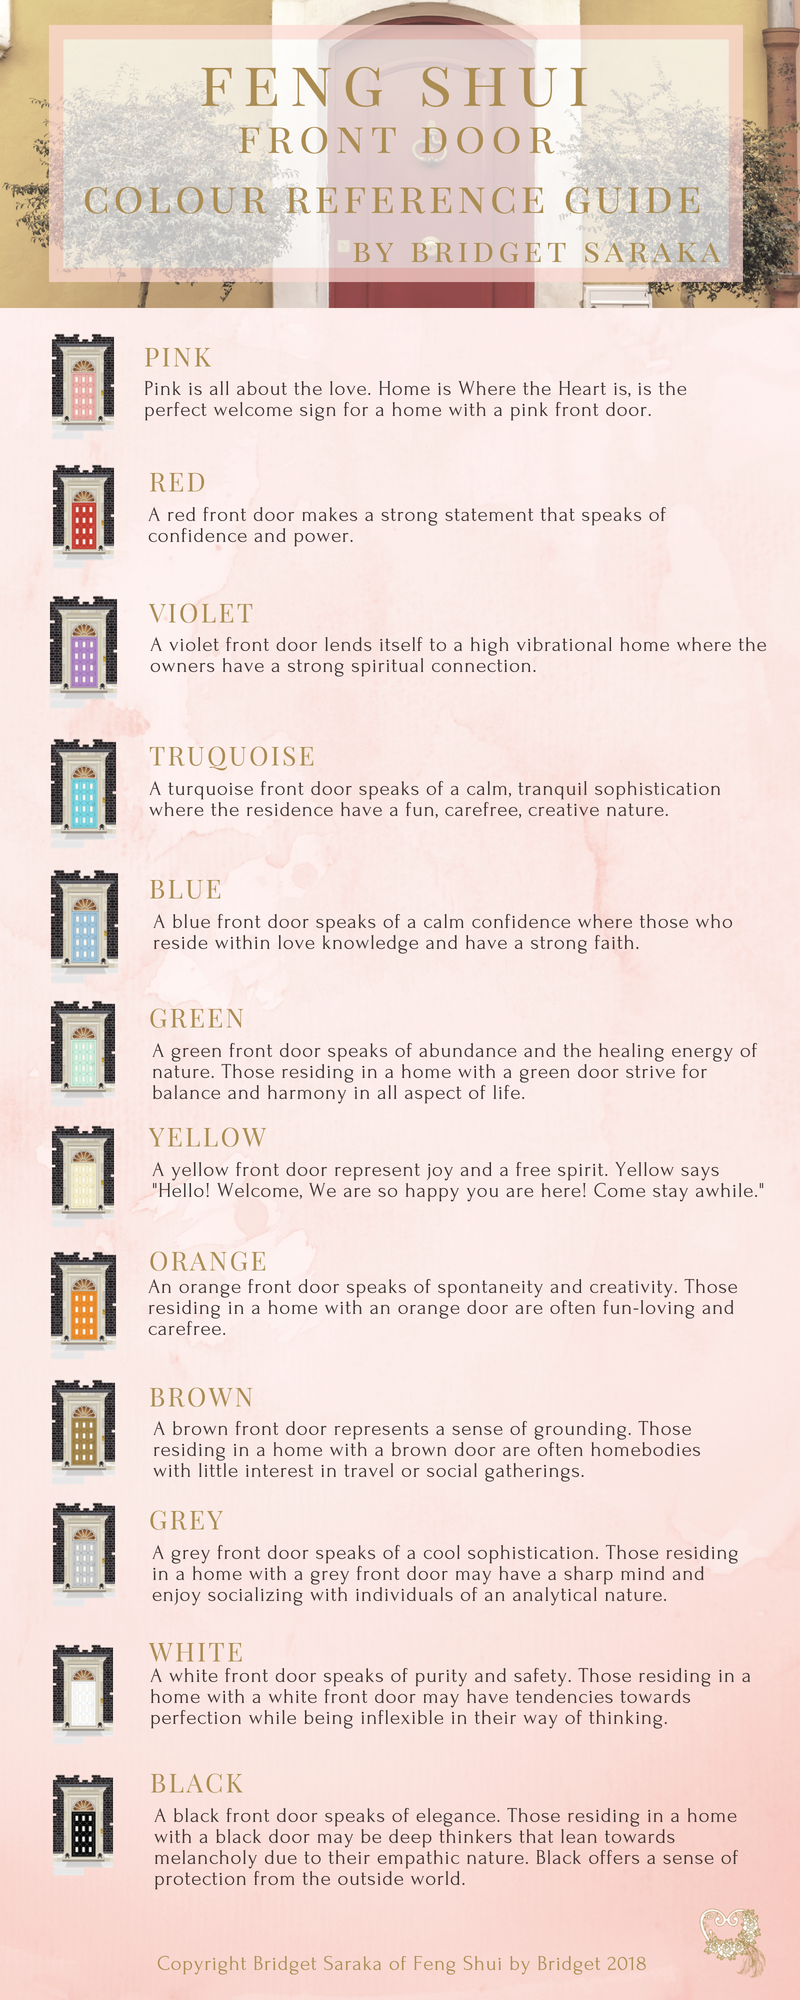 Feng Shui Front Door Colour Reference Guide Feng Shui By Bridget